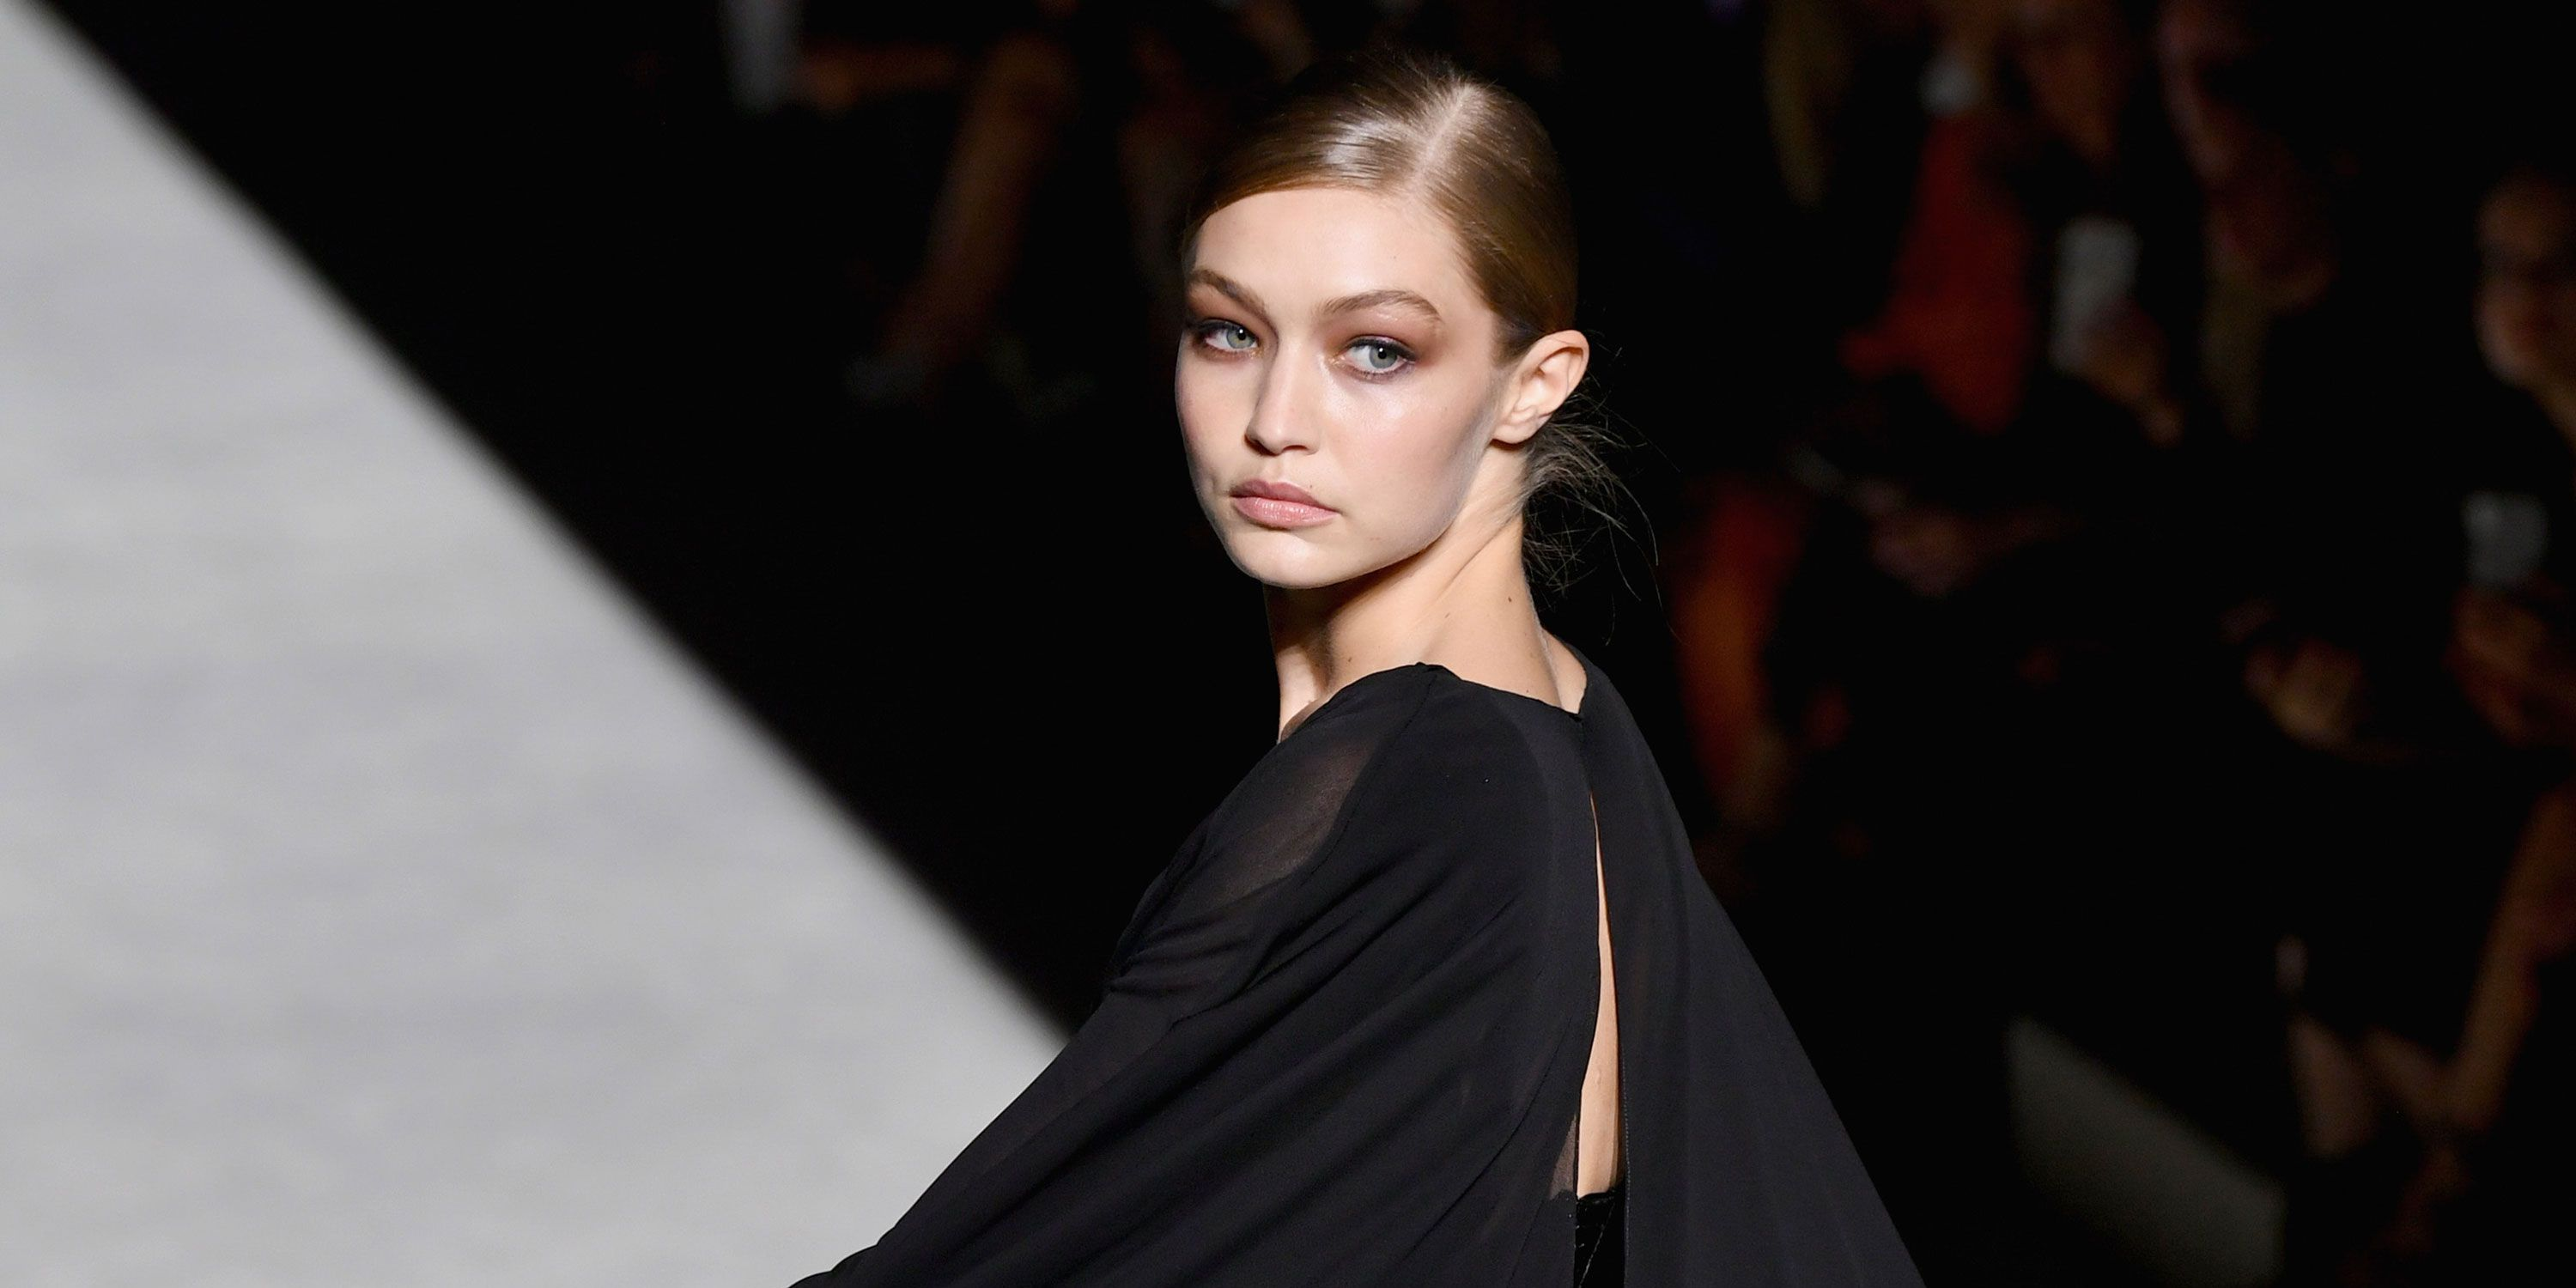 Gigi Hadid on the Tom Ford spring summer 2019 catwalk